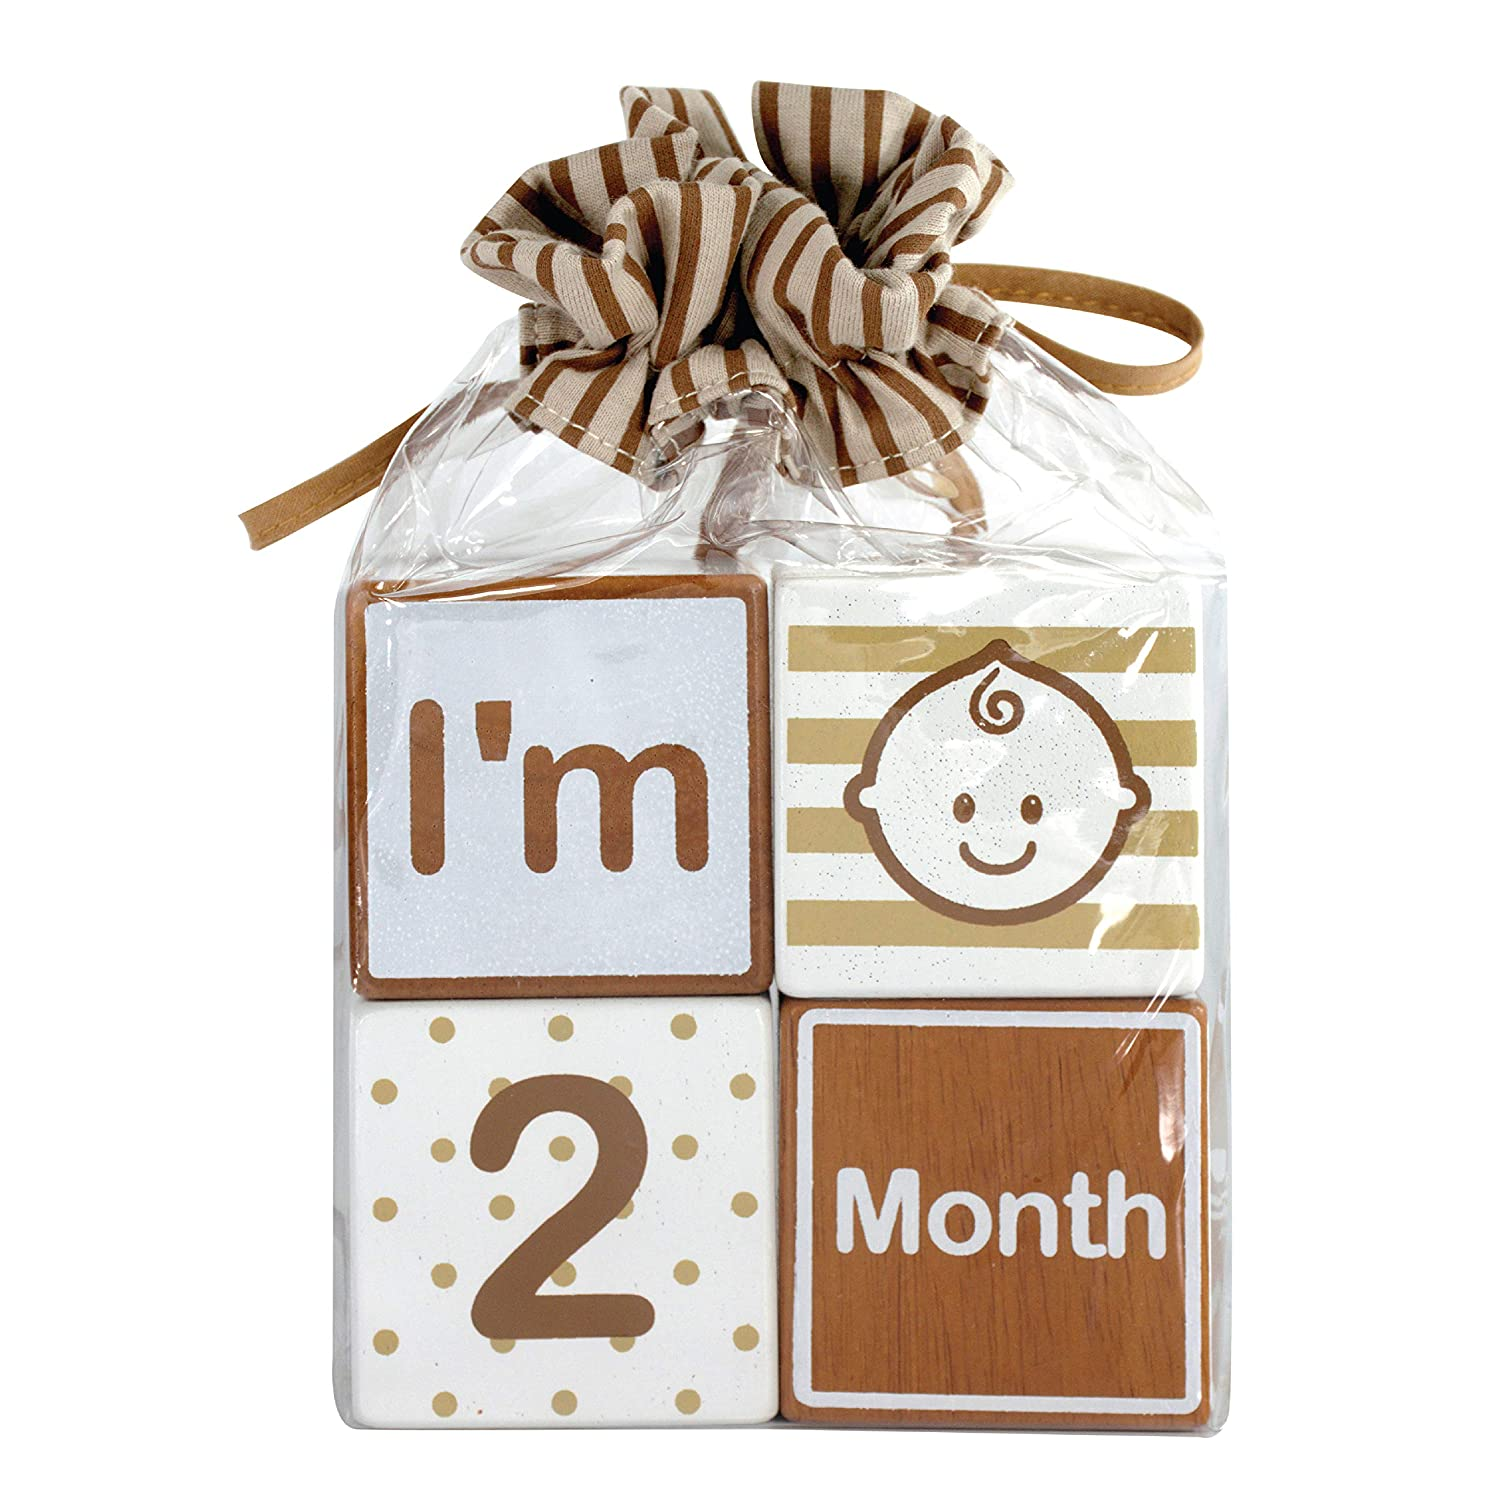 I'm Solid Wood Monthly Baby Milestone Age Blocks, Newborn Baby Gifts & Keepsakes for Baby Pictures (4 Pcs / Blue) I'm International Co. Ltd